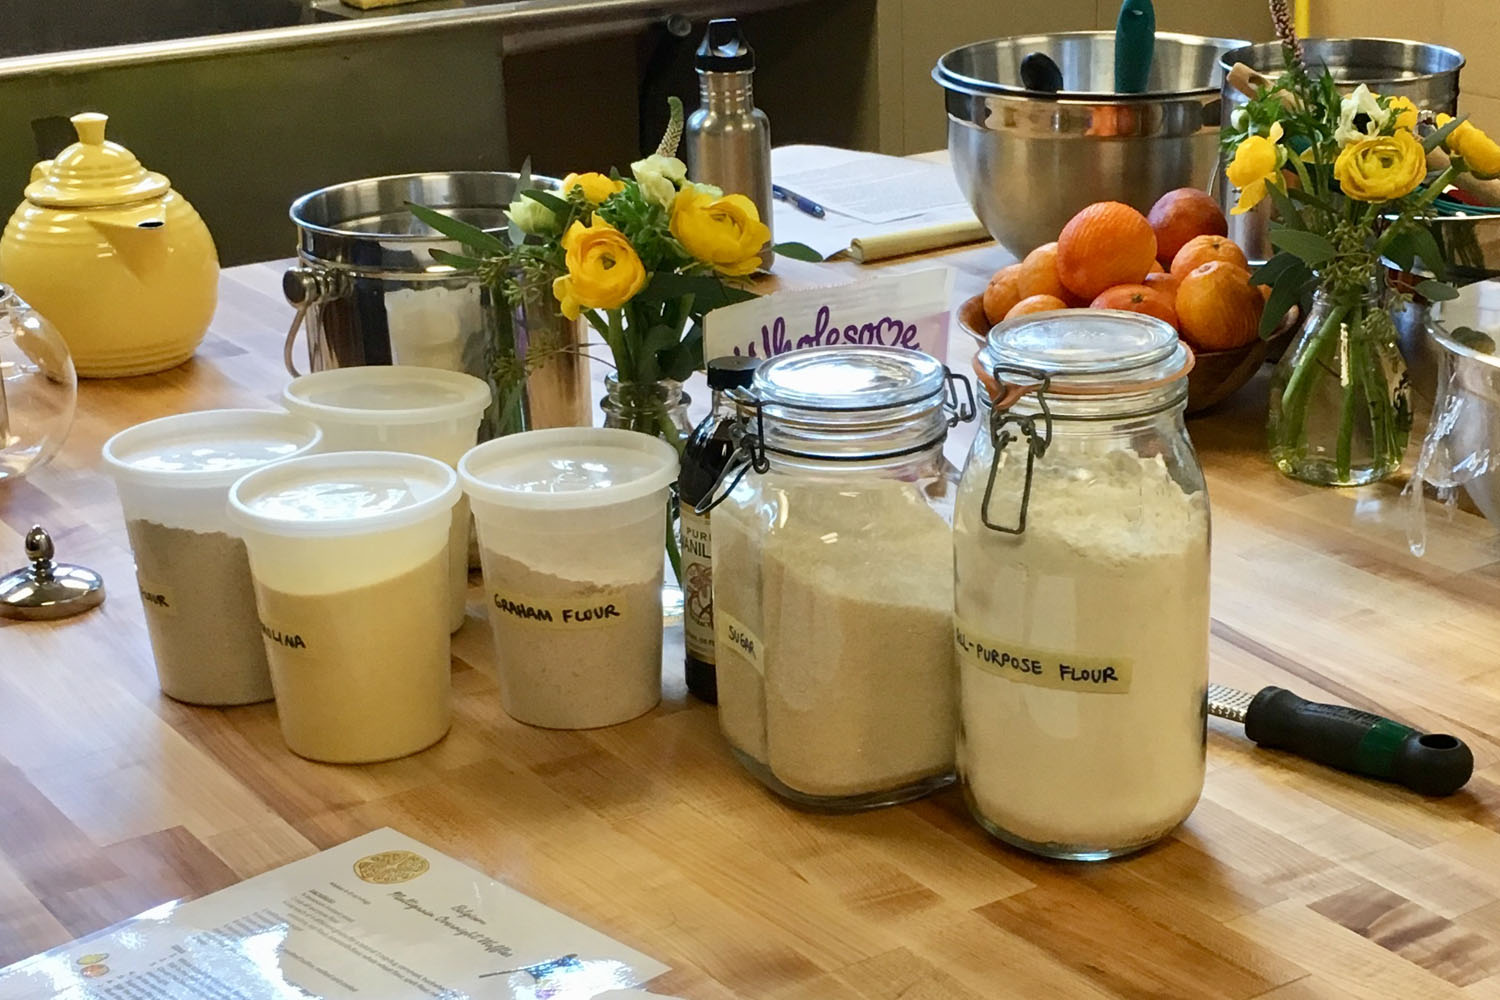 We used five different kinds of flour in our waffle batter: white wheat, semolina, cornmeal, buckwheat, and graham.